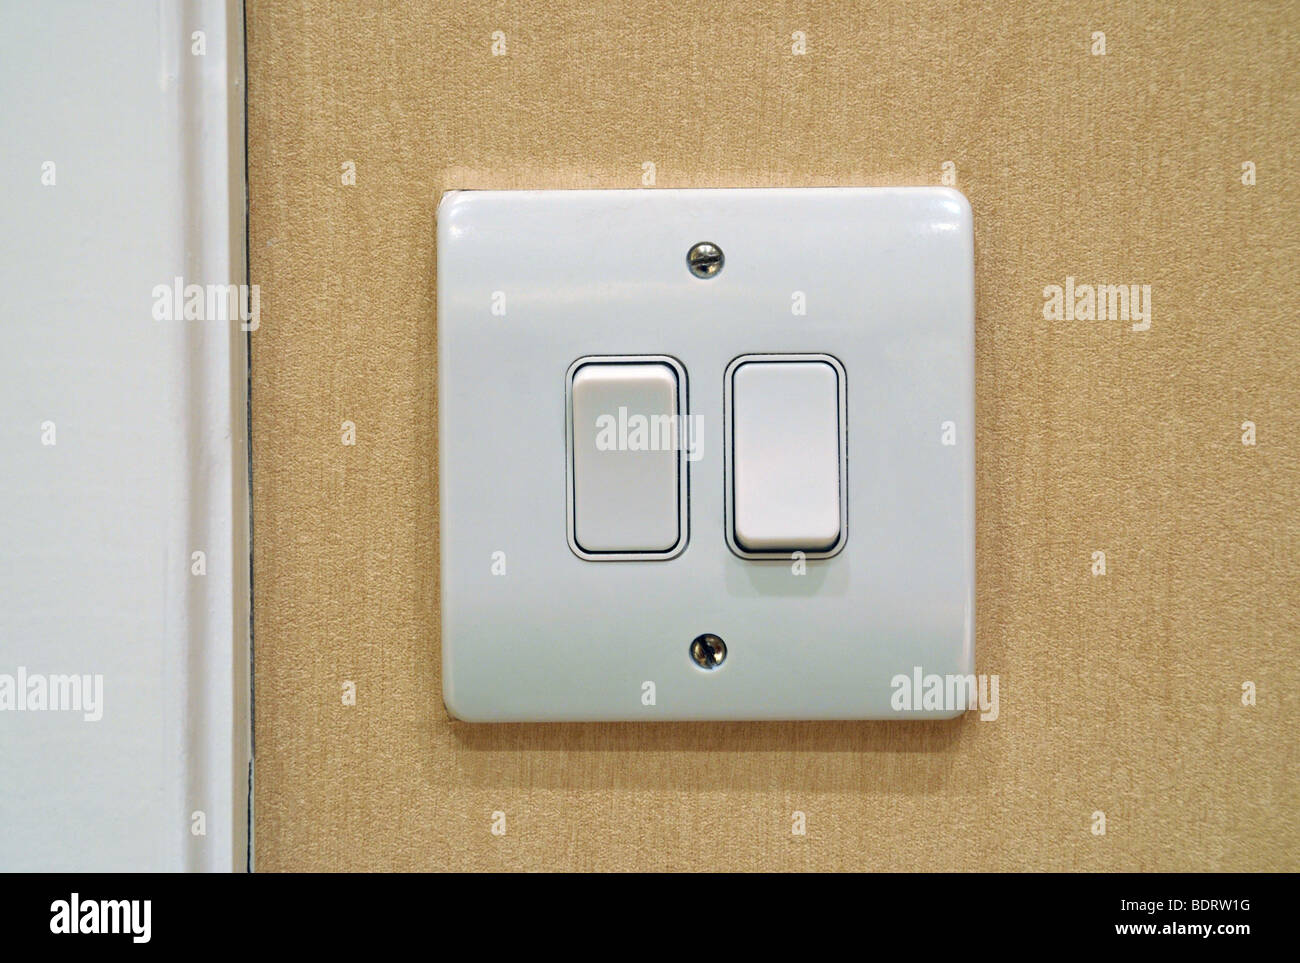 Two Light Switches Stock Photos & Two Light Switches Stock Images ...